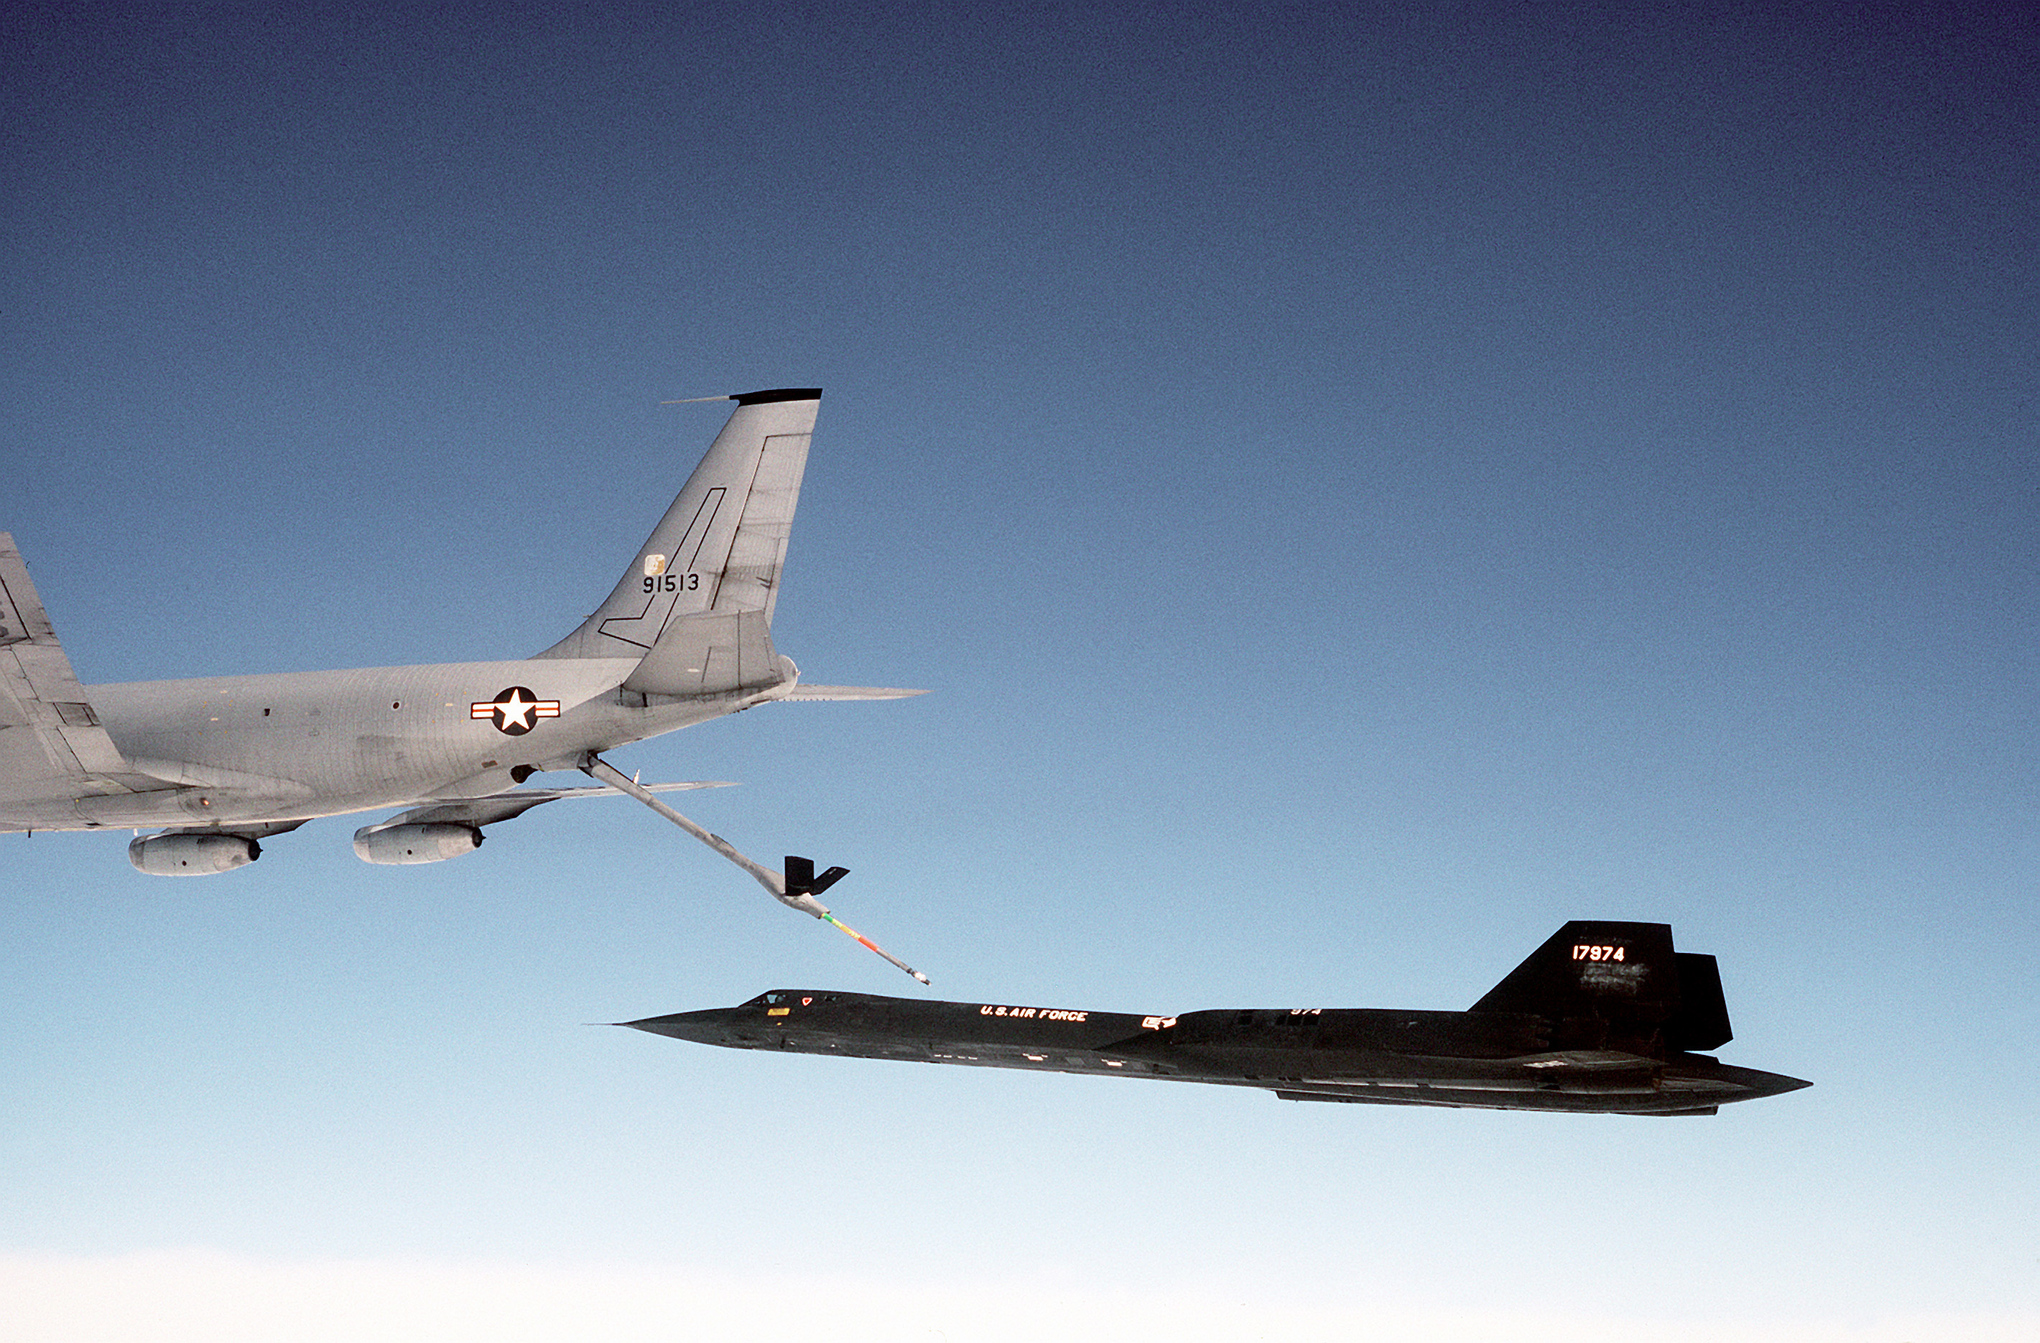 Boeing_kc-135q_refueling_sr-71_medium